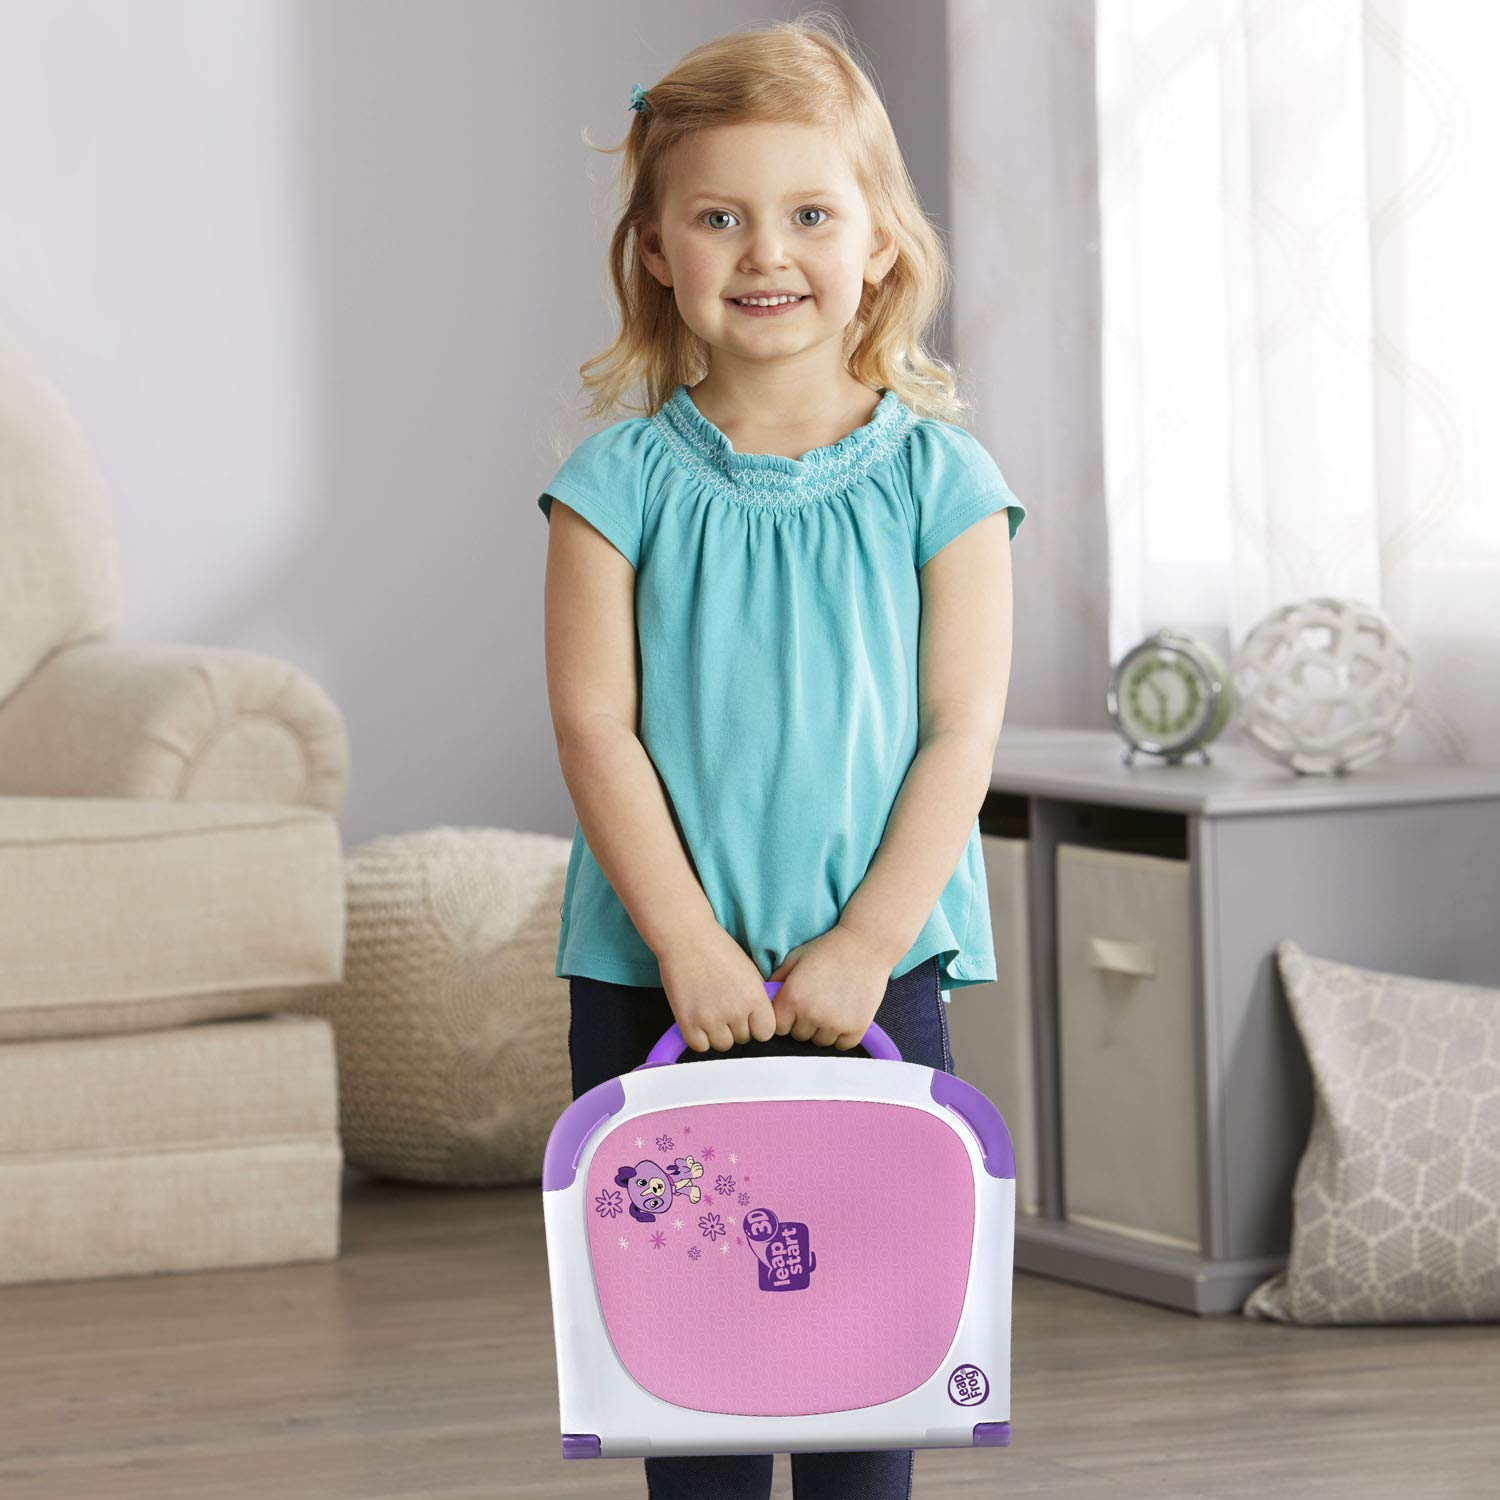 LeapFrog LeapStart 3D Interactive Learning System Amazon Exclusive, Violet by LeapFrog (Image #7)